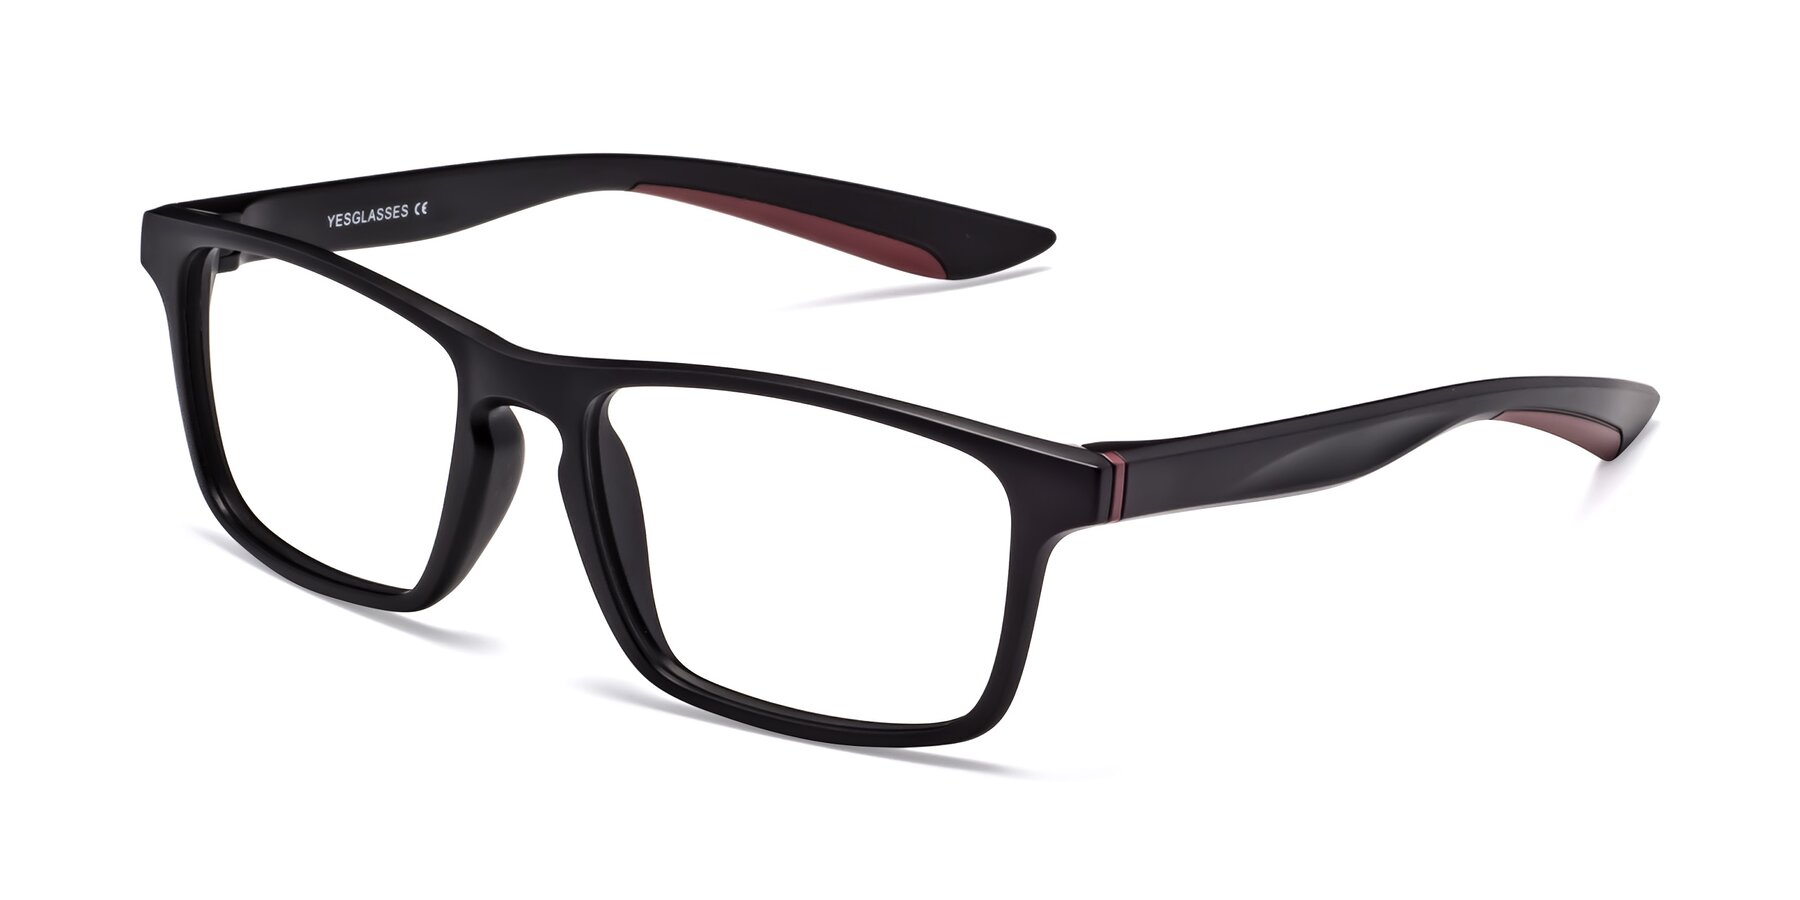 Angle of Passion in Matte Black-Wine with Clear Blue Light Blocking Lenses